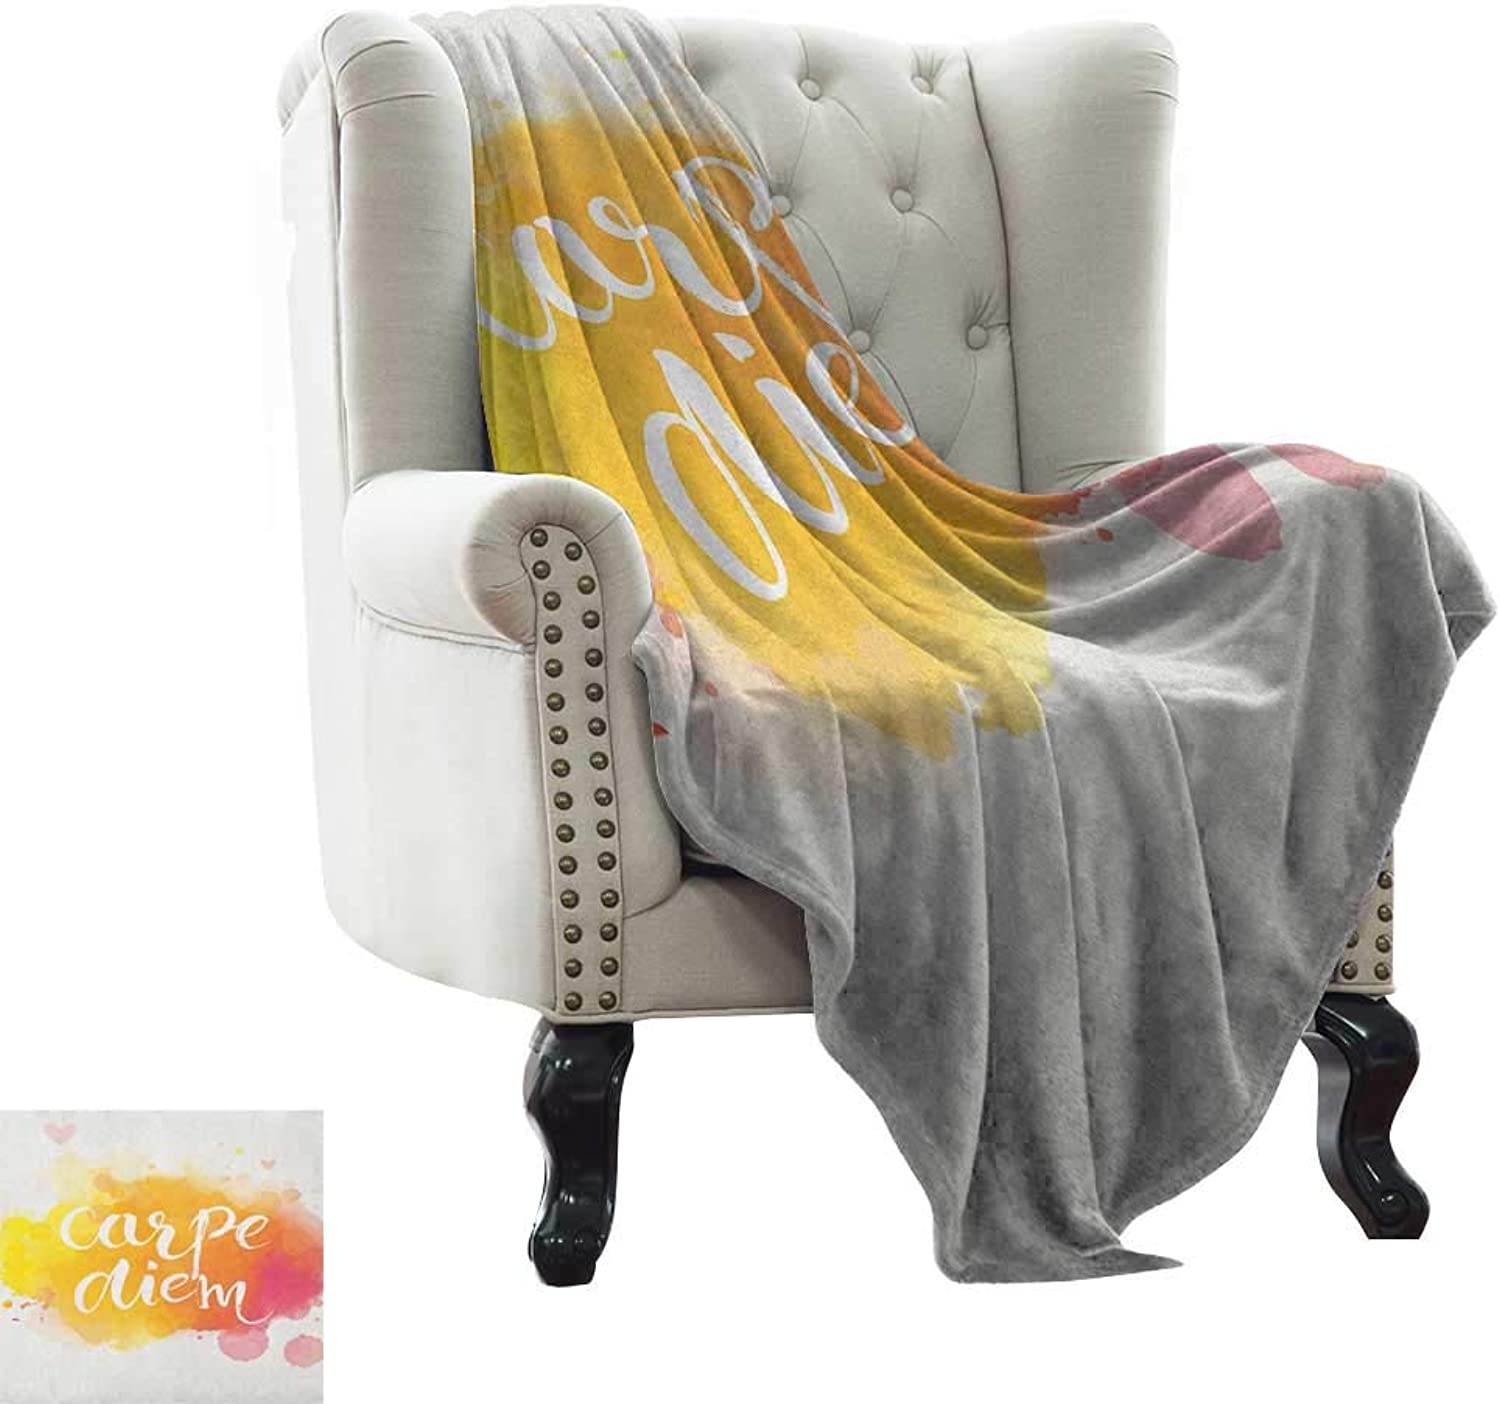 BelleAckerman Baby Blanket Yellow and White,Watercolor Style with Carpe Diem Seize The Day Enjoy The Moment, Yellow Marigold Pink Comfortable Soft Material  give You Great Sleep 60 x62